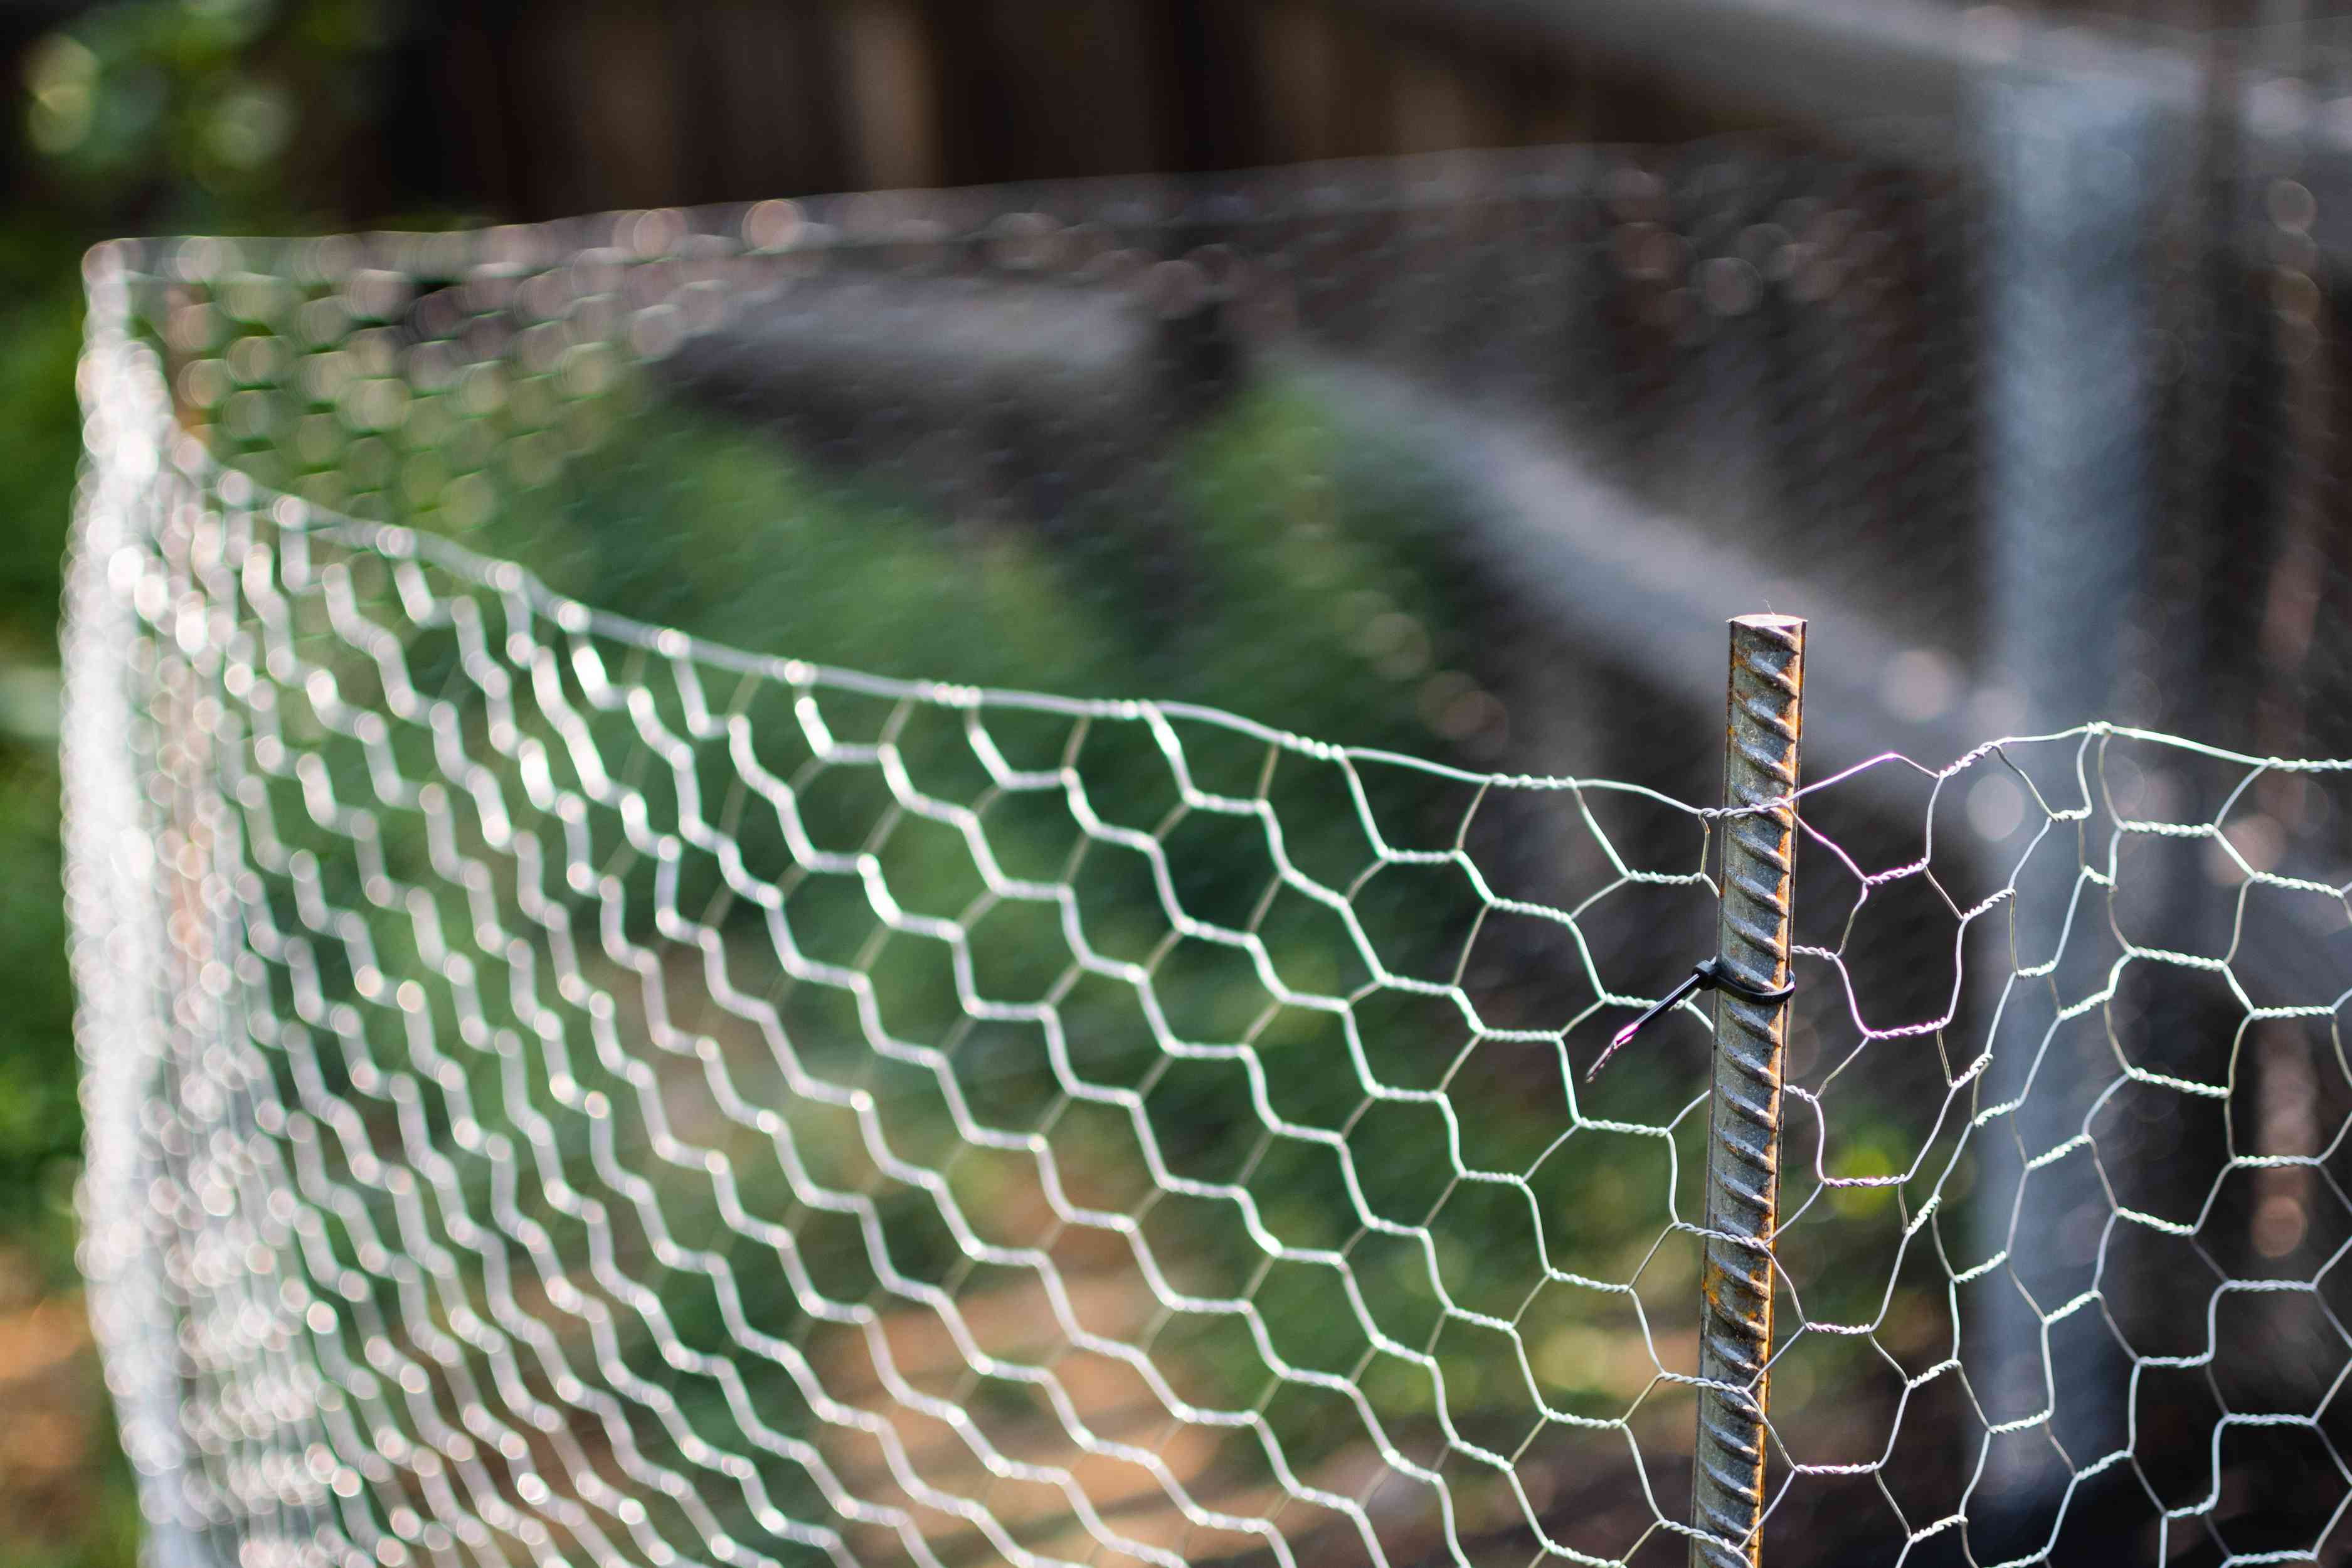 Metal chicken wire wrapped around rebar poles and secured with zip ties